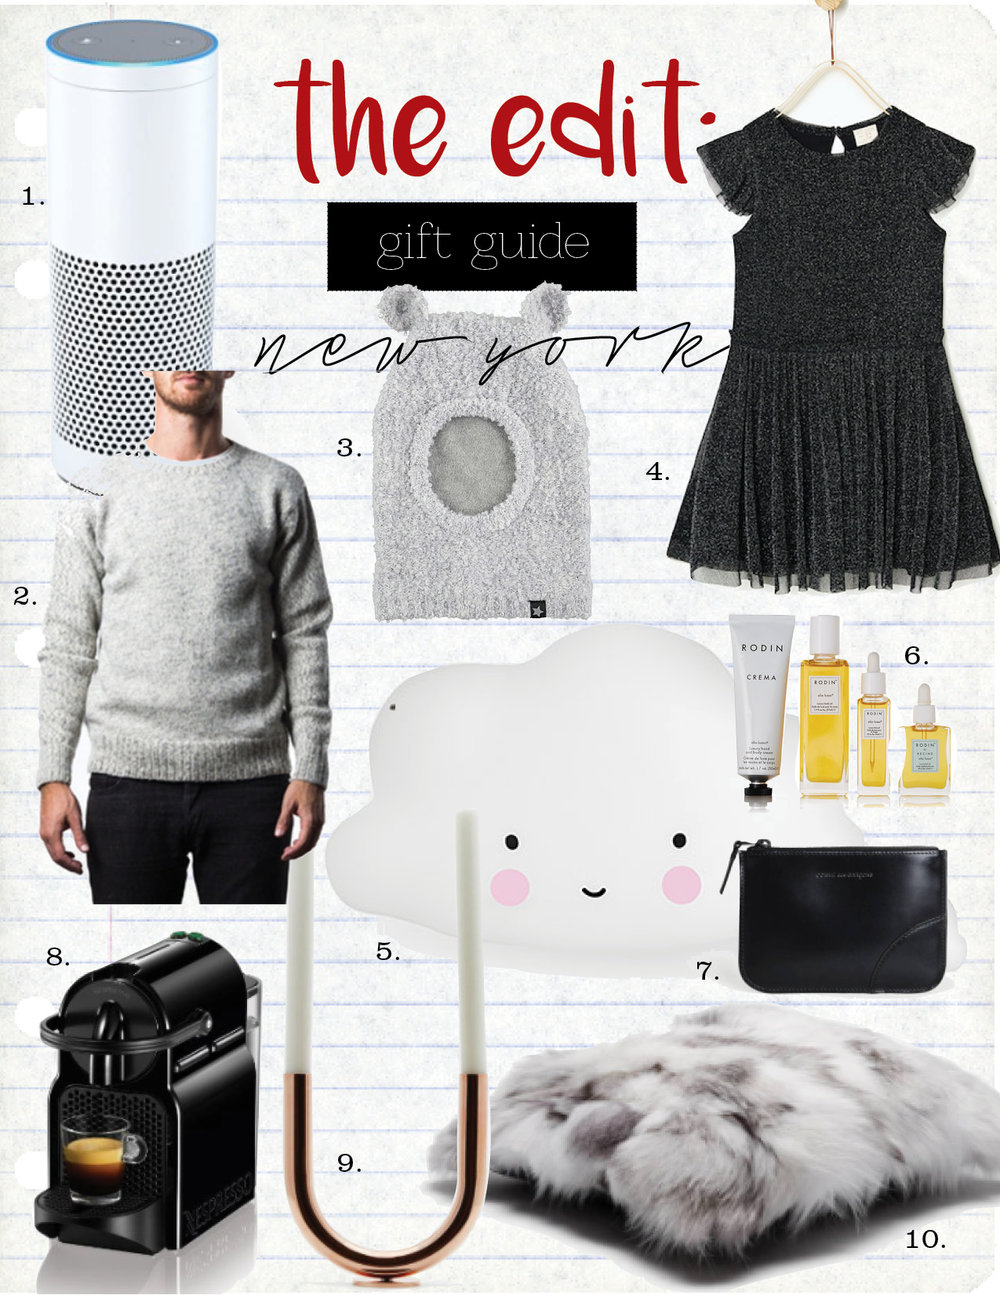 1. Echo, $179,  amazon.com  2. Warm wool sweater, $195,  warmny.myshopify.com  3. molo kis ski mask, $54,  yoyashop.com  4. zara shiny tulle dress, $29,  zara.com  5. moma cloud light, $145,  store.moma.org  6. rodin olio lusso travel kit, $250,  net-a-porter.com  7. comme des garcons black small zip top pouch, $165,  theline.com  8. nespresso intissia espresso maker, $94,  amazon.com  9. minimalux copper U candleholder, $325,  theline.com  10. tenfold new york white patched fox fur pillow, $395,  theline.com